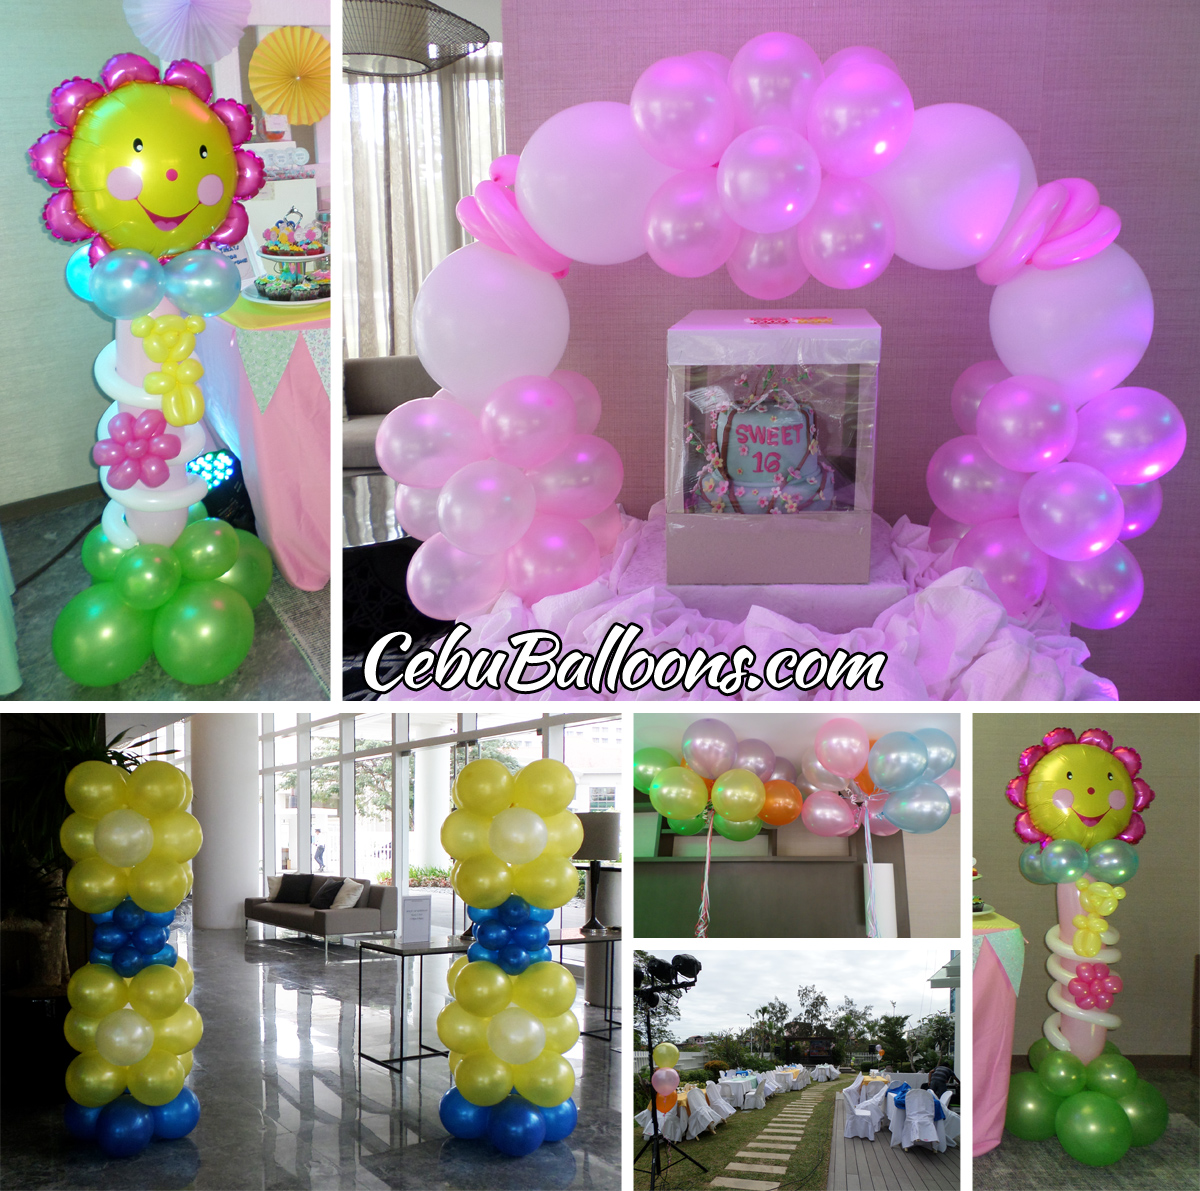 Balloon Decorations for a Sweet 16 Birthday Party at 1016